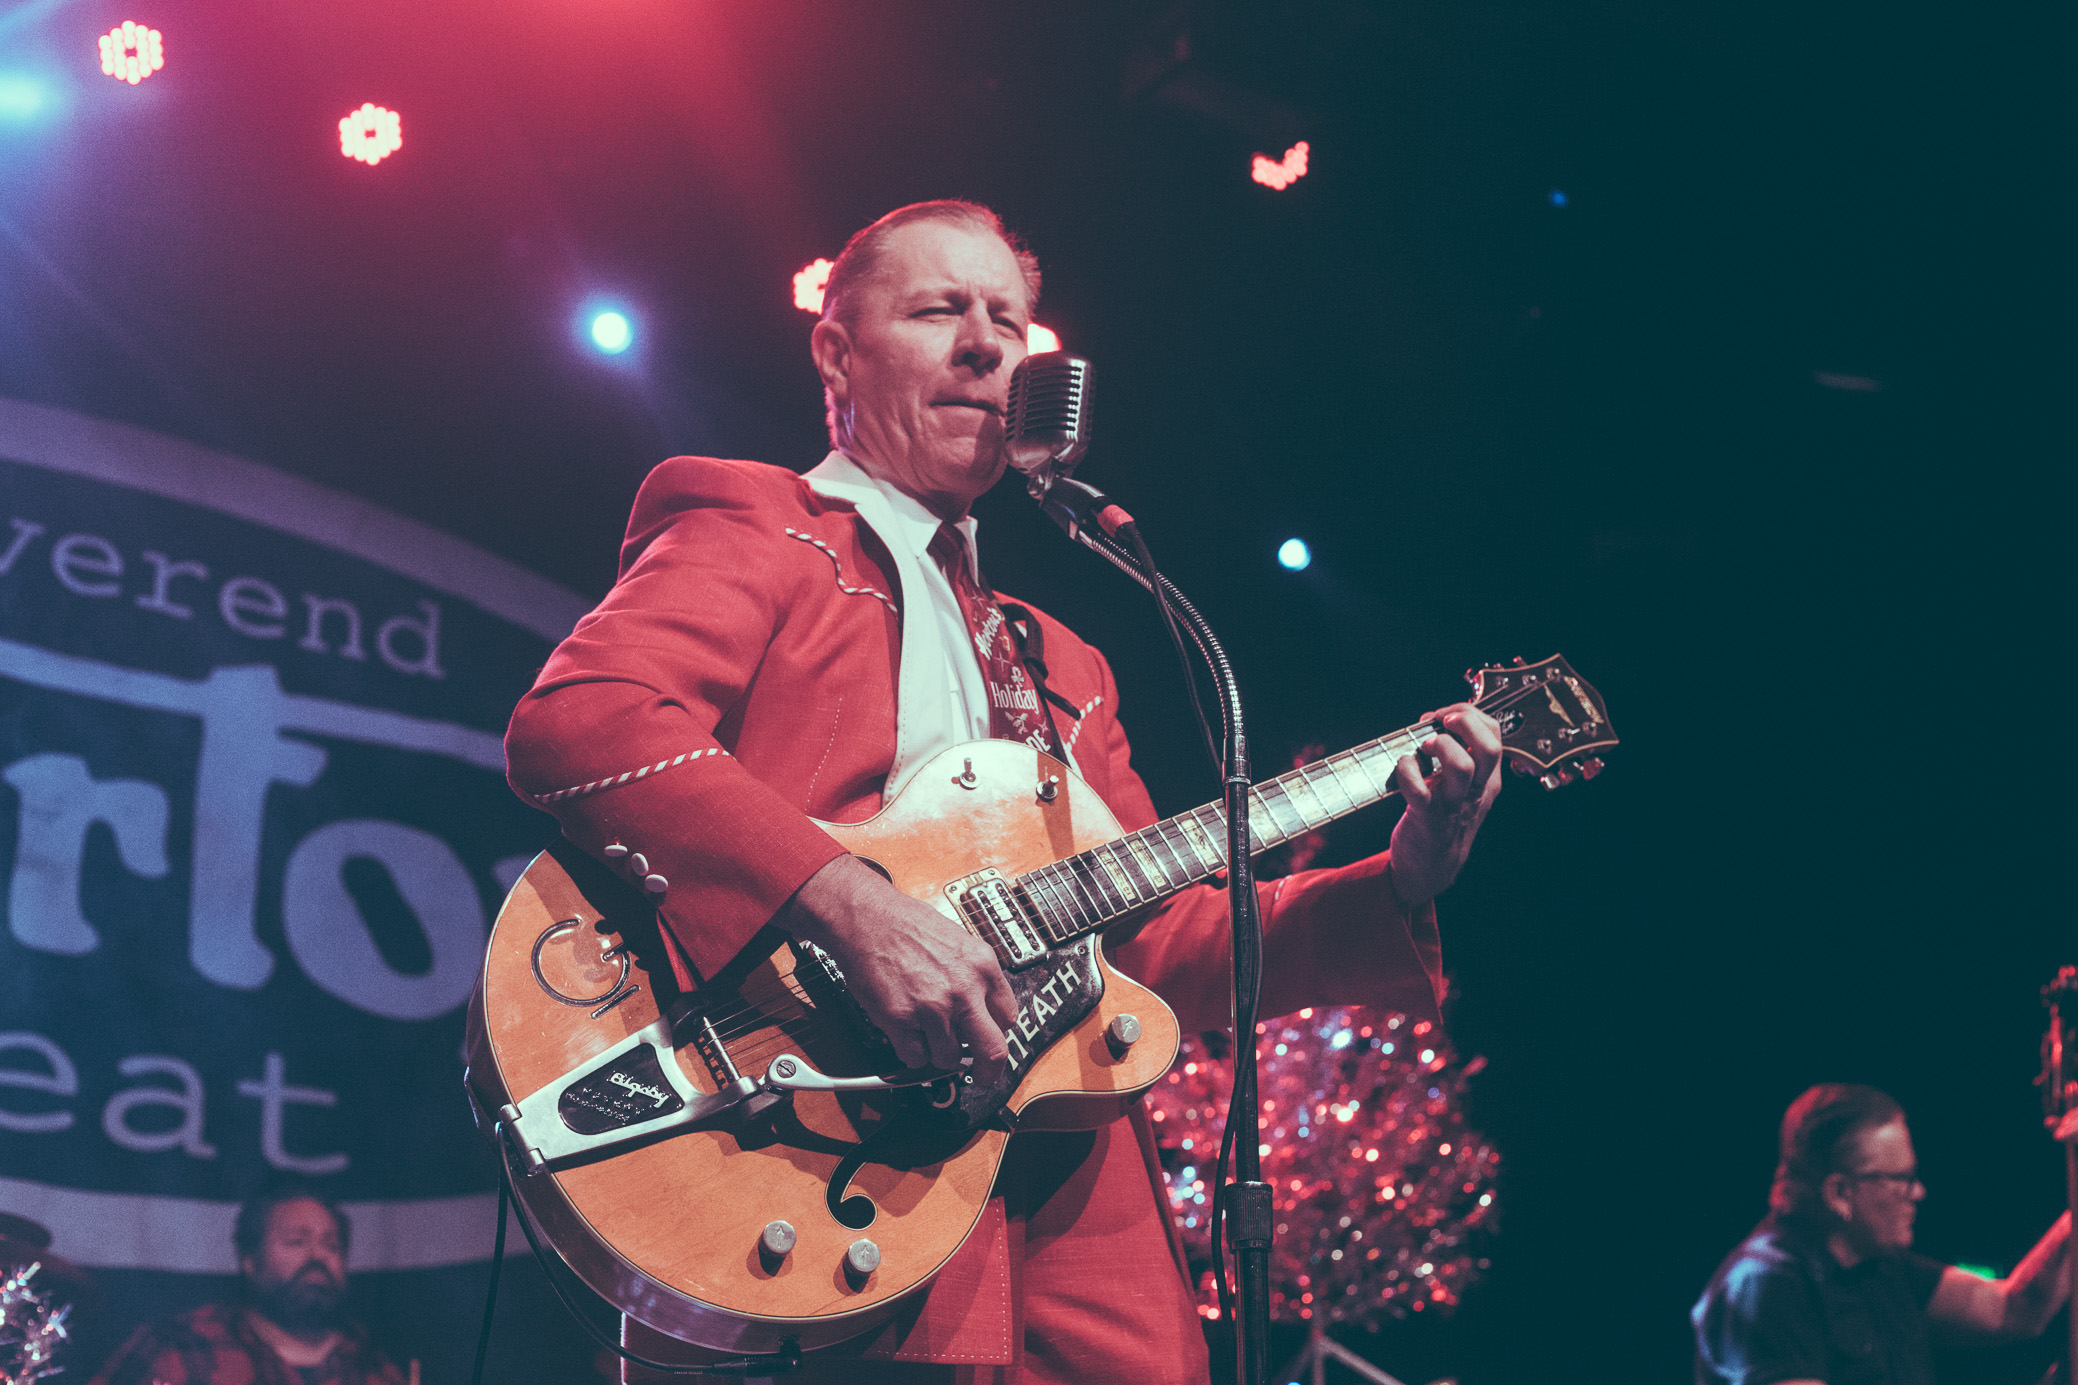 The Reverend Horton Heat performs in concert at Iron City in Birmingham, Alabama on December 22nd, 2018. (Photo by David A. Smith / DSmithScenes)